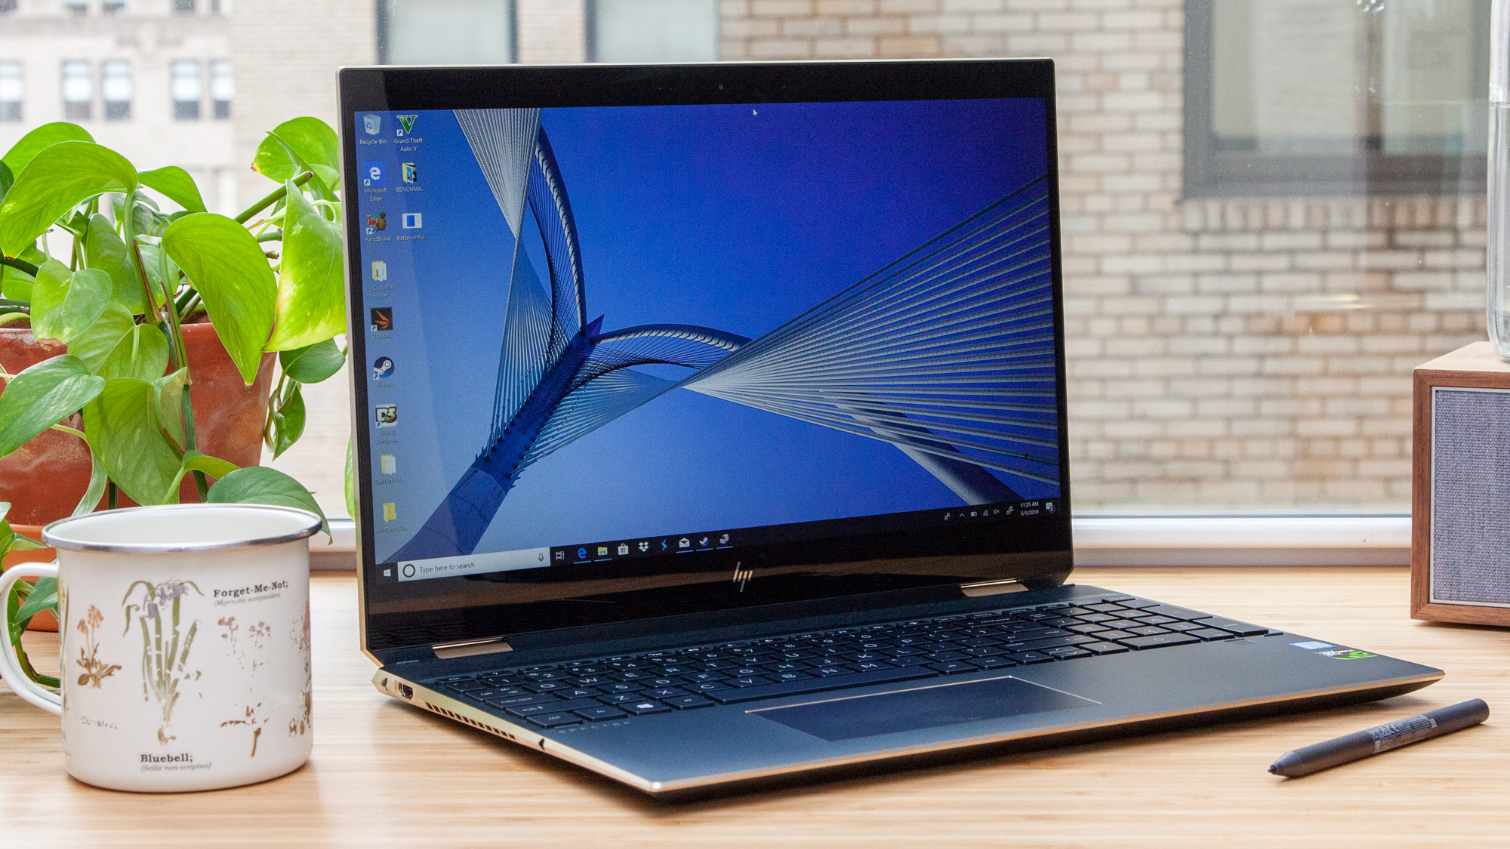 HP Spectre x360 15 (2019) Laptop Review: An Edgier Look - Tom's ...